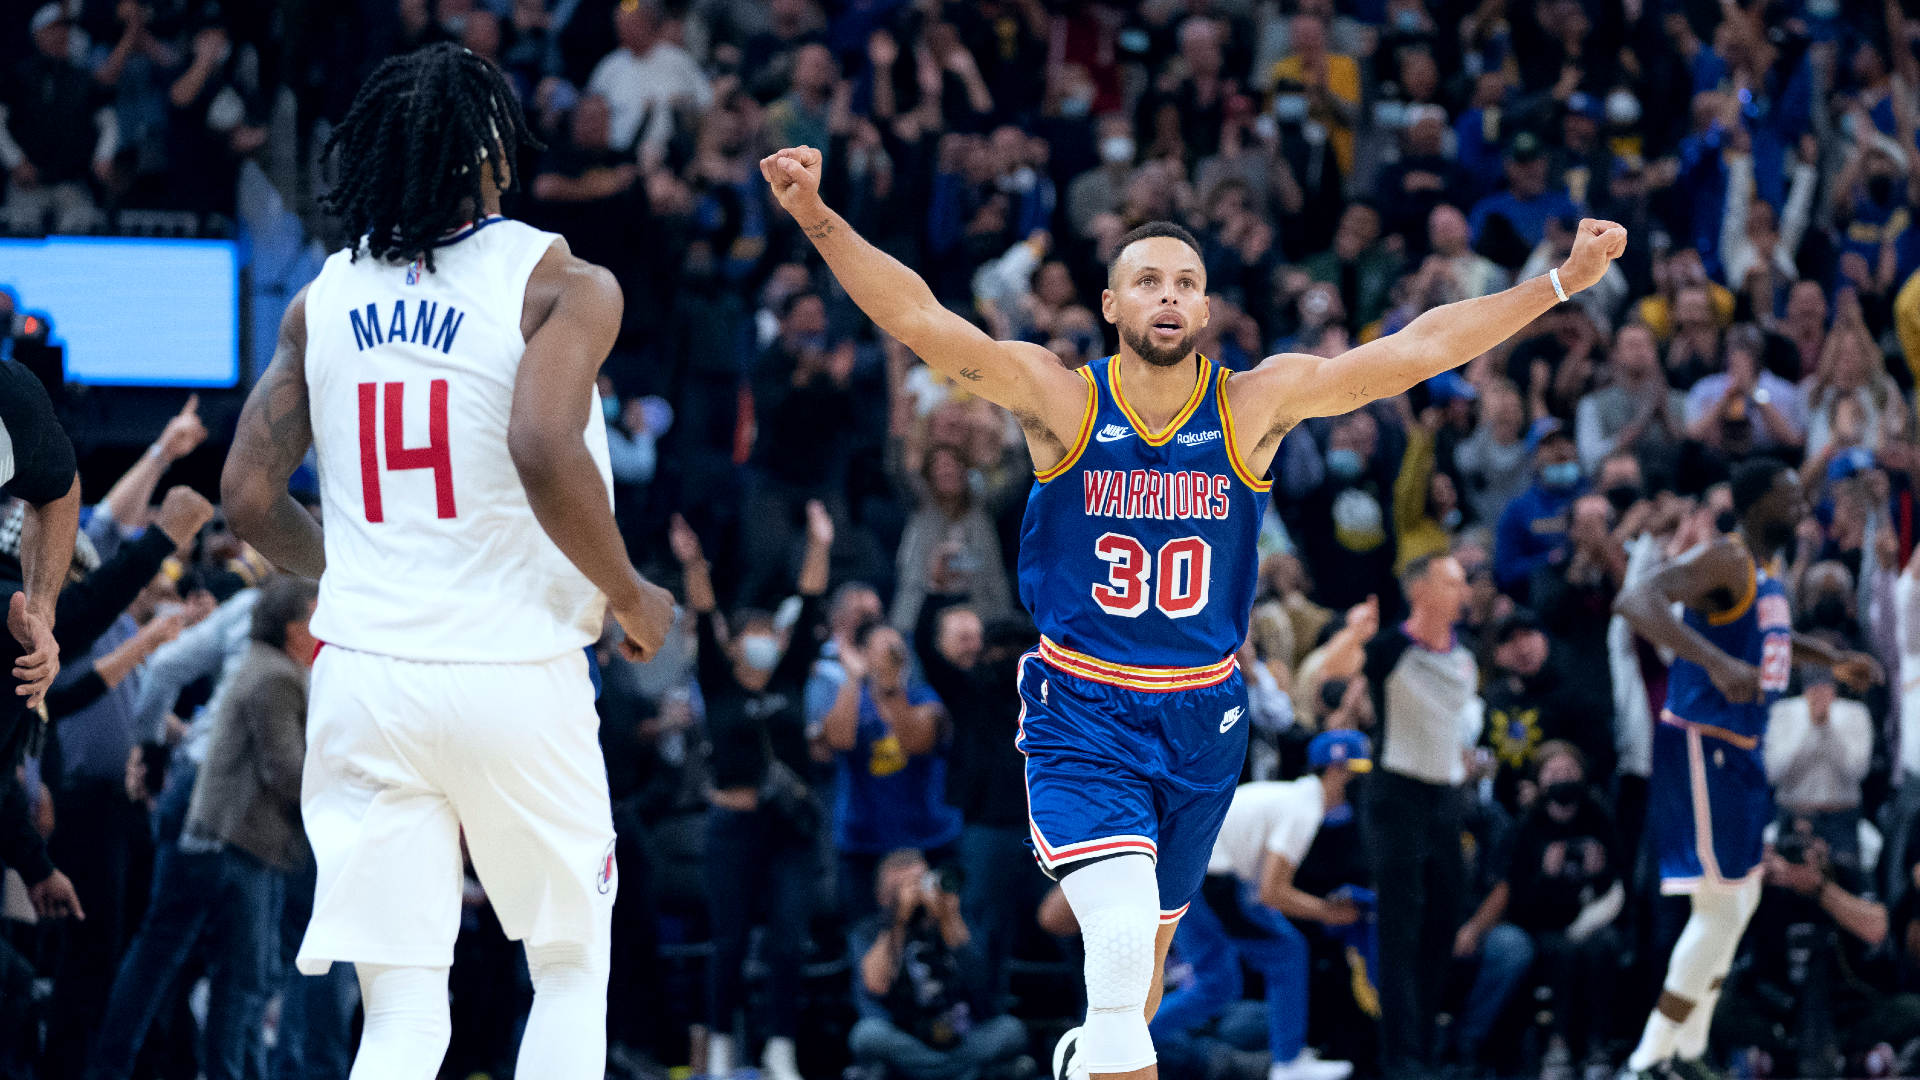 Curry drops 45 on Clippers as Warriors win home opener